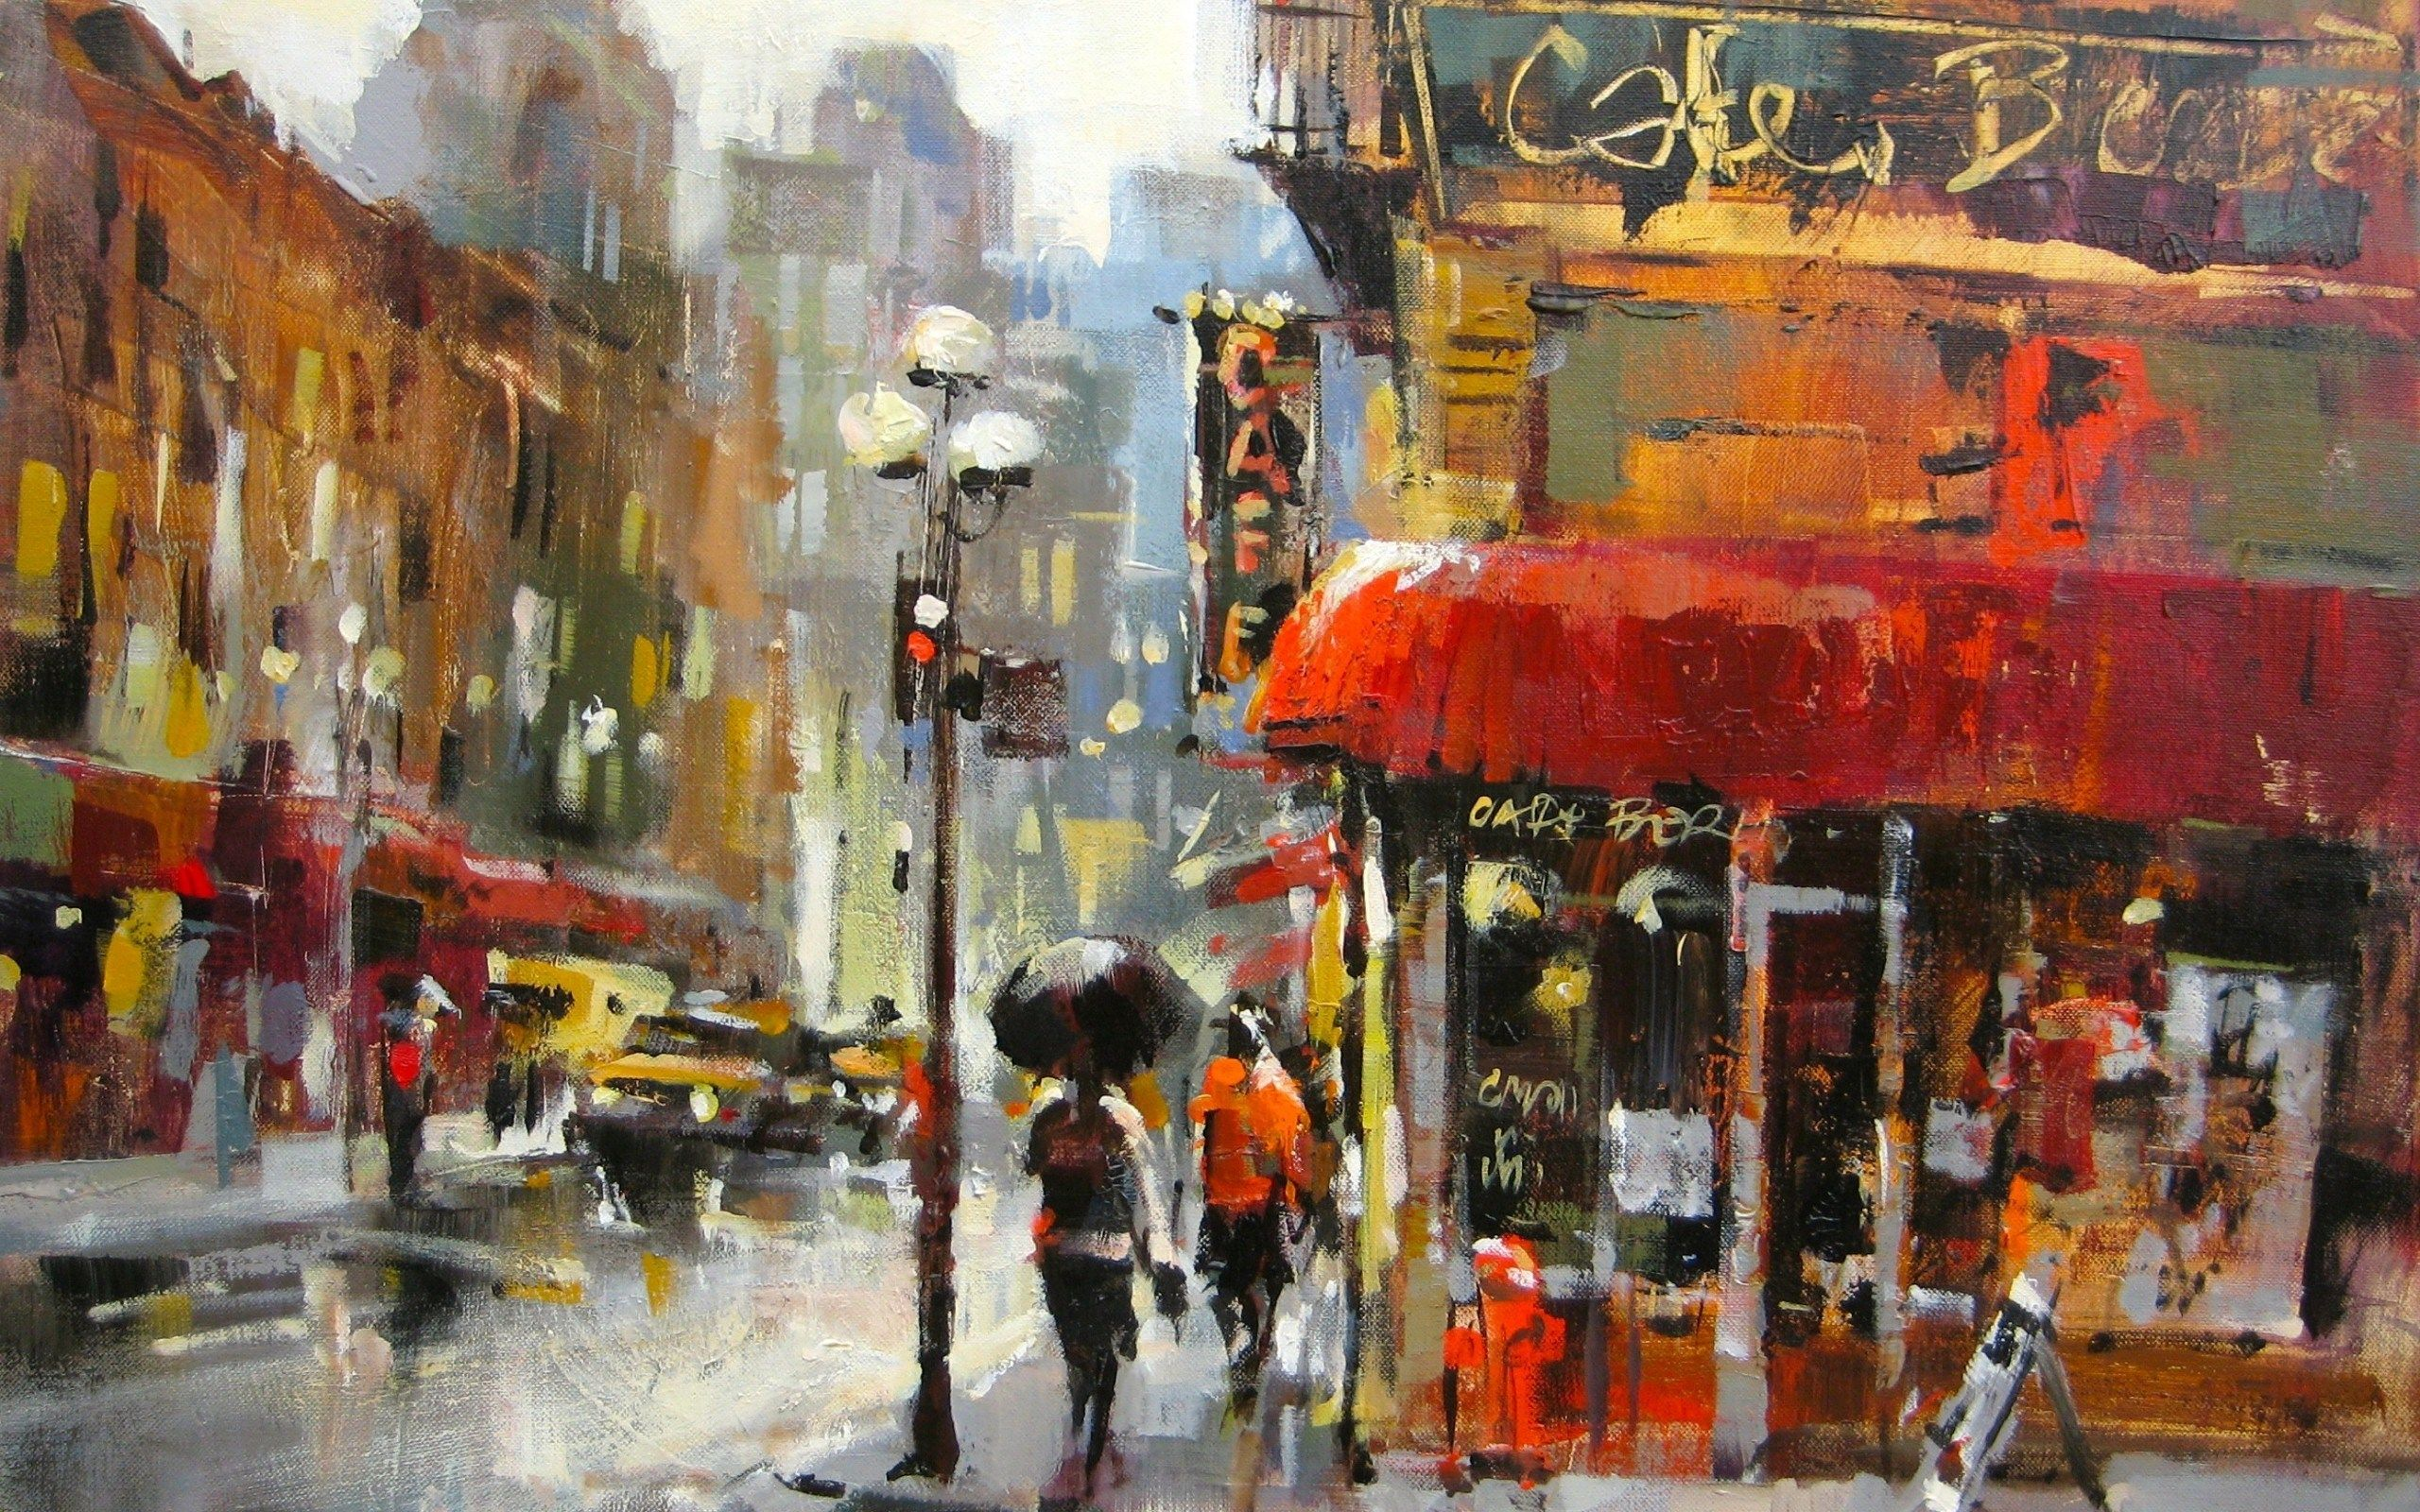 City Street Rainy Day Oil Painting Hd Wallpaper Cool